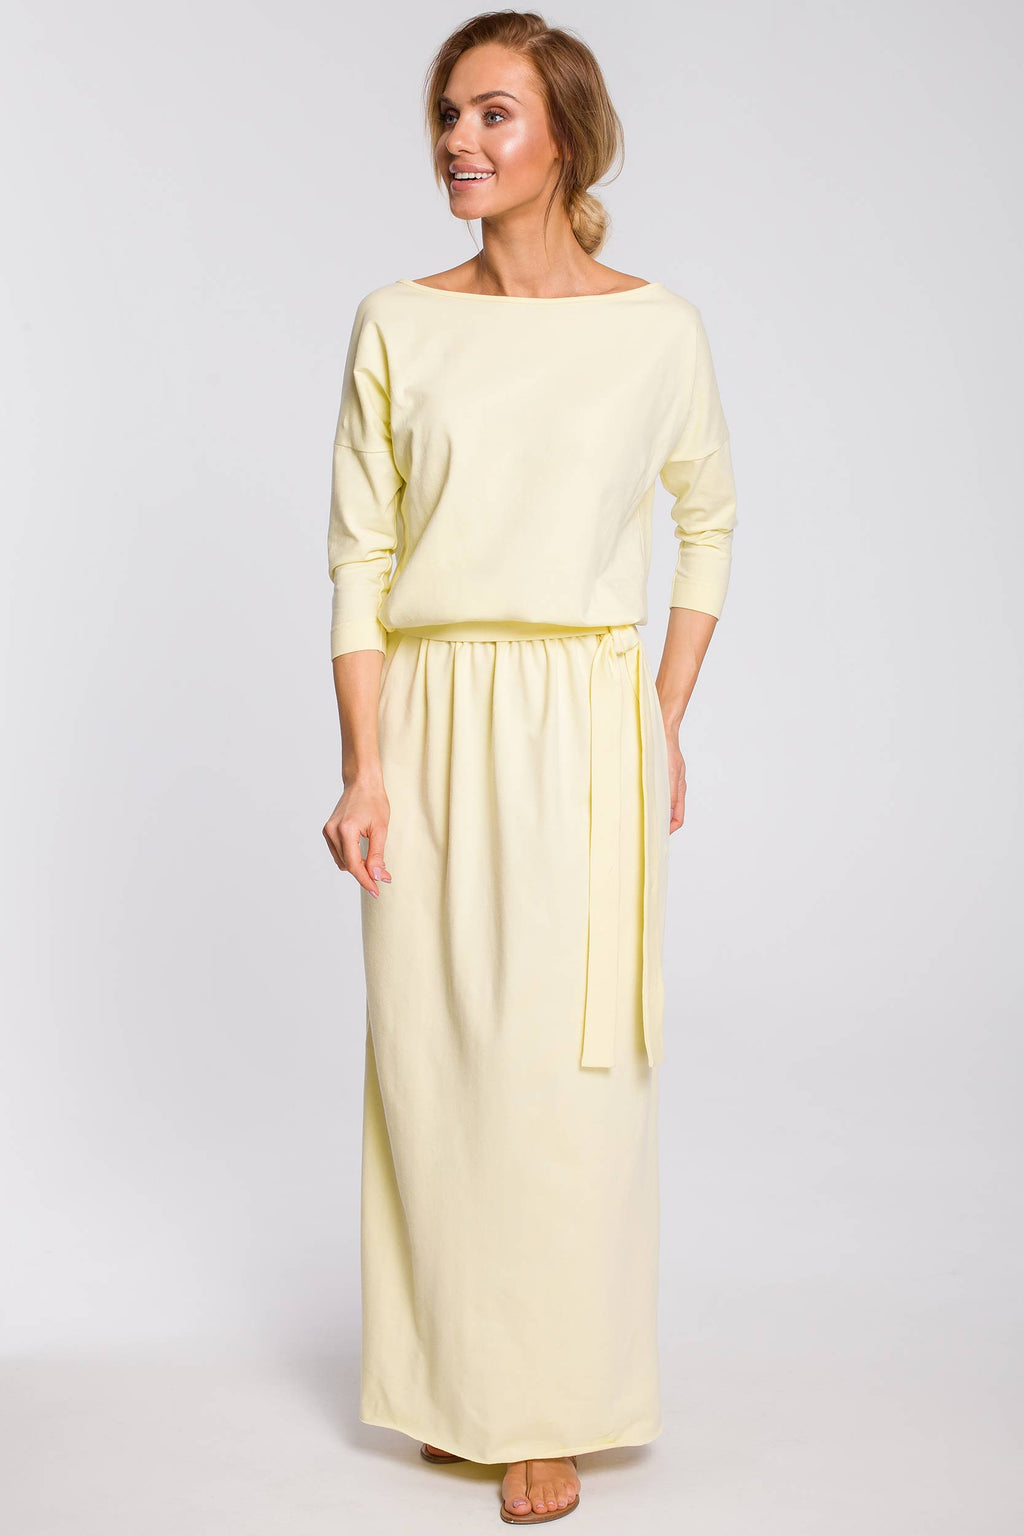 Maxi Yellow Blouson Cotton Dress With Sewn In Belt